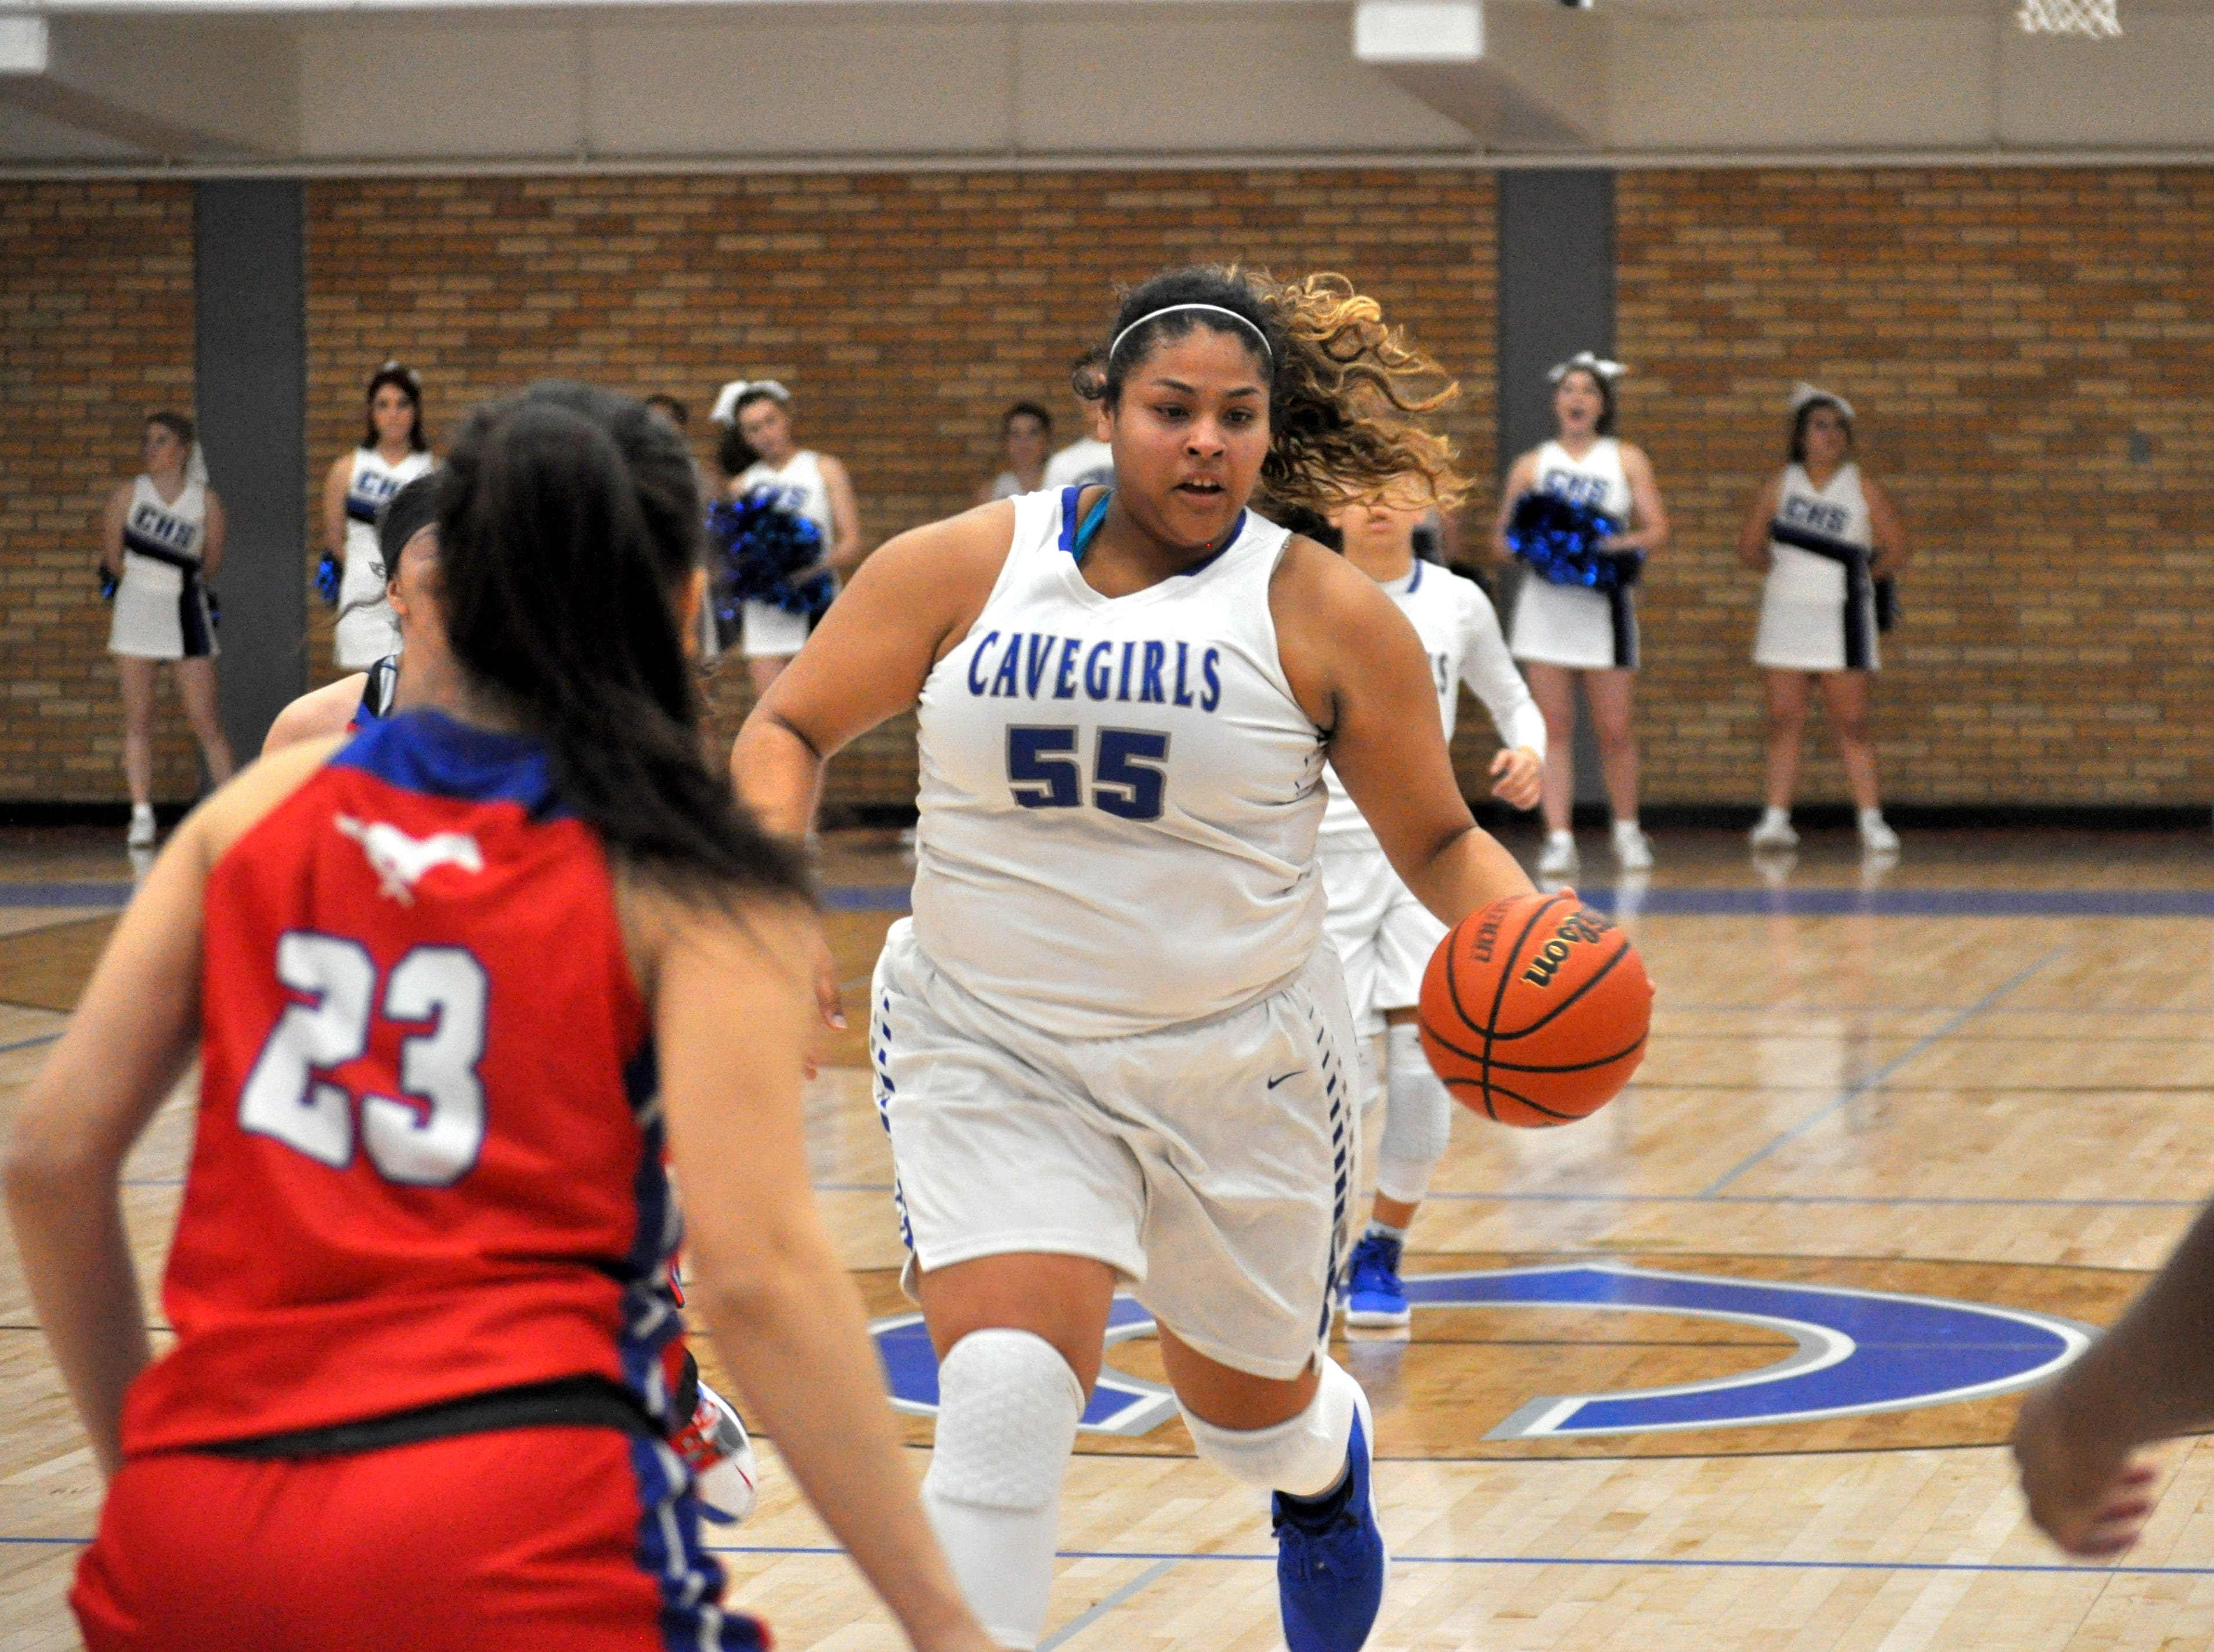 Kaliyah Montoya drives the lane during Friday's game against West Mesa.